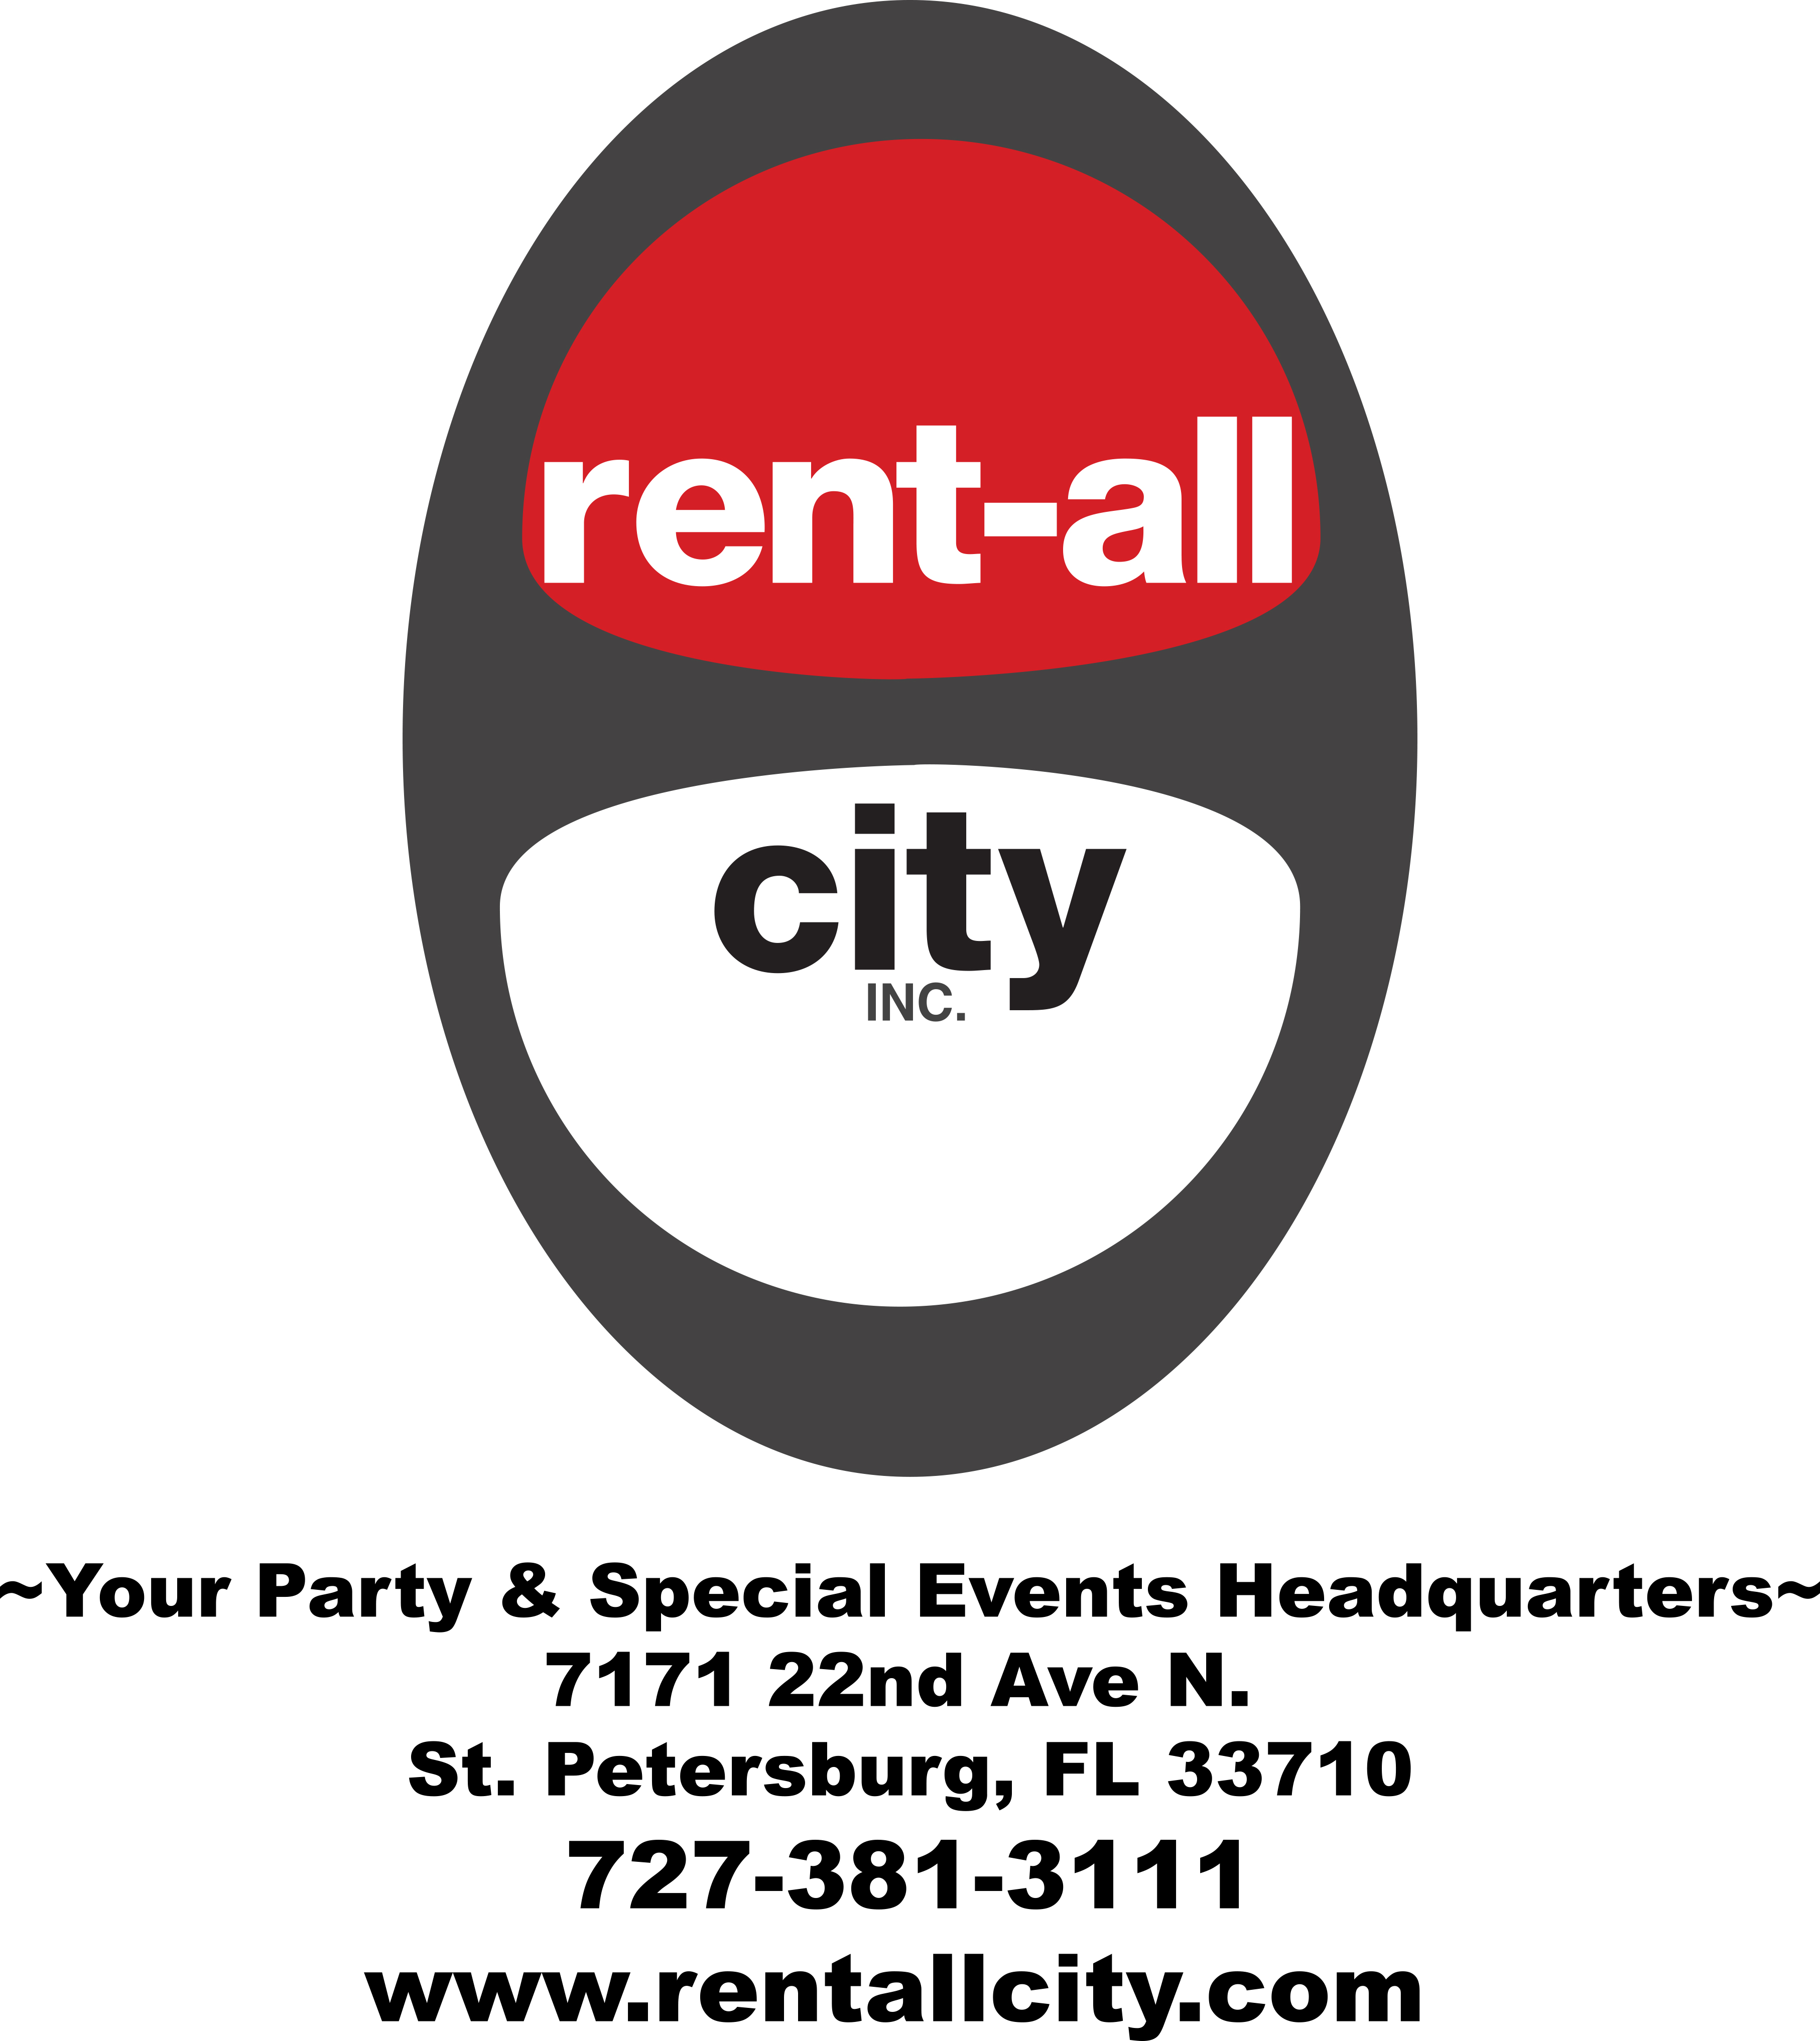 Gala sponsor Rent-All City